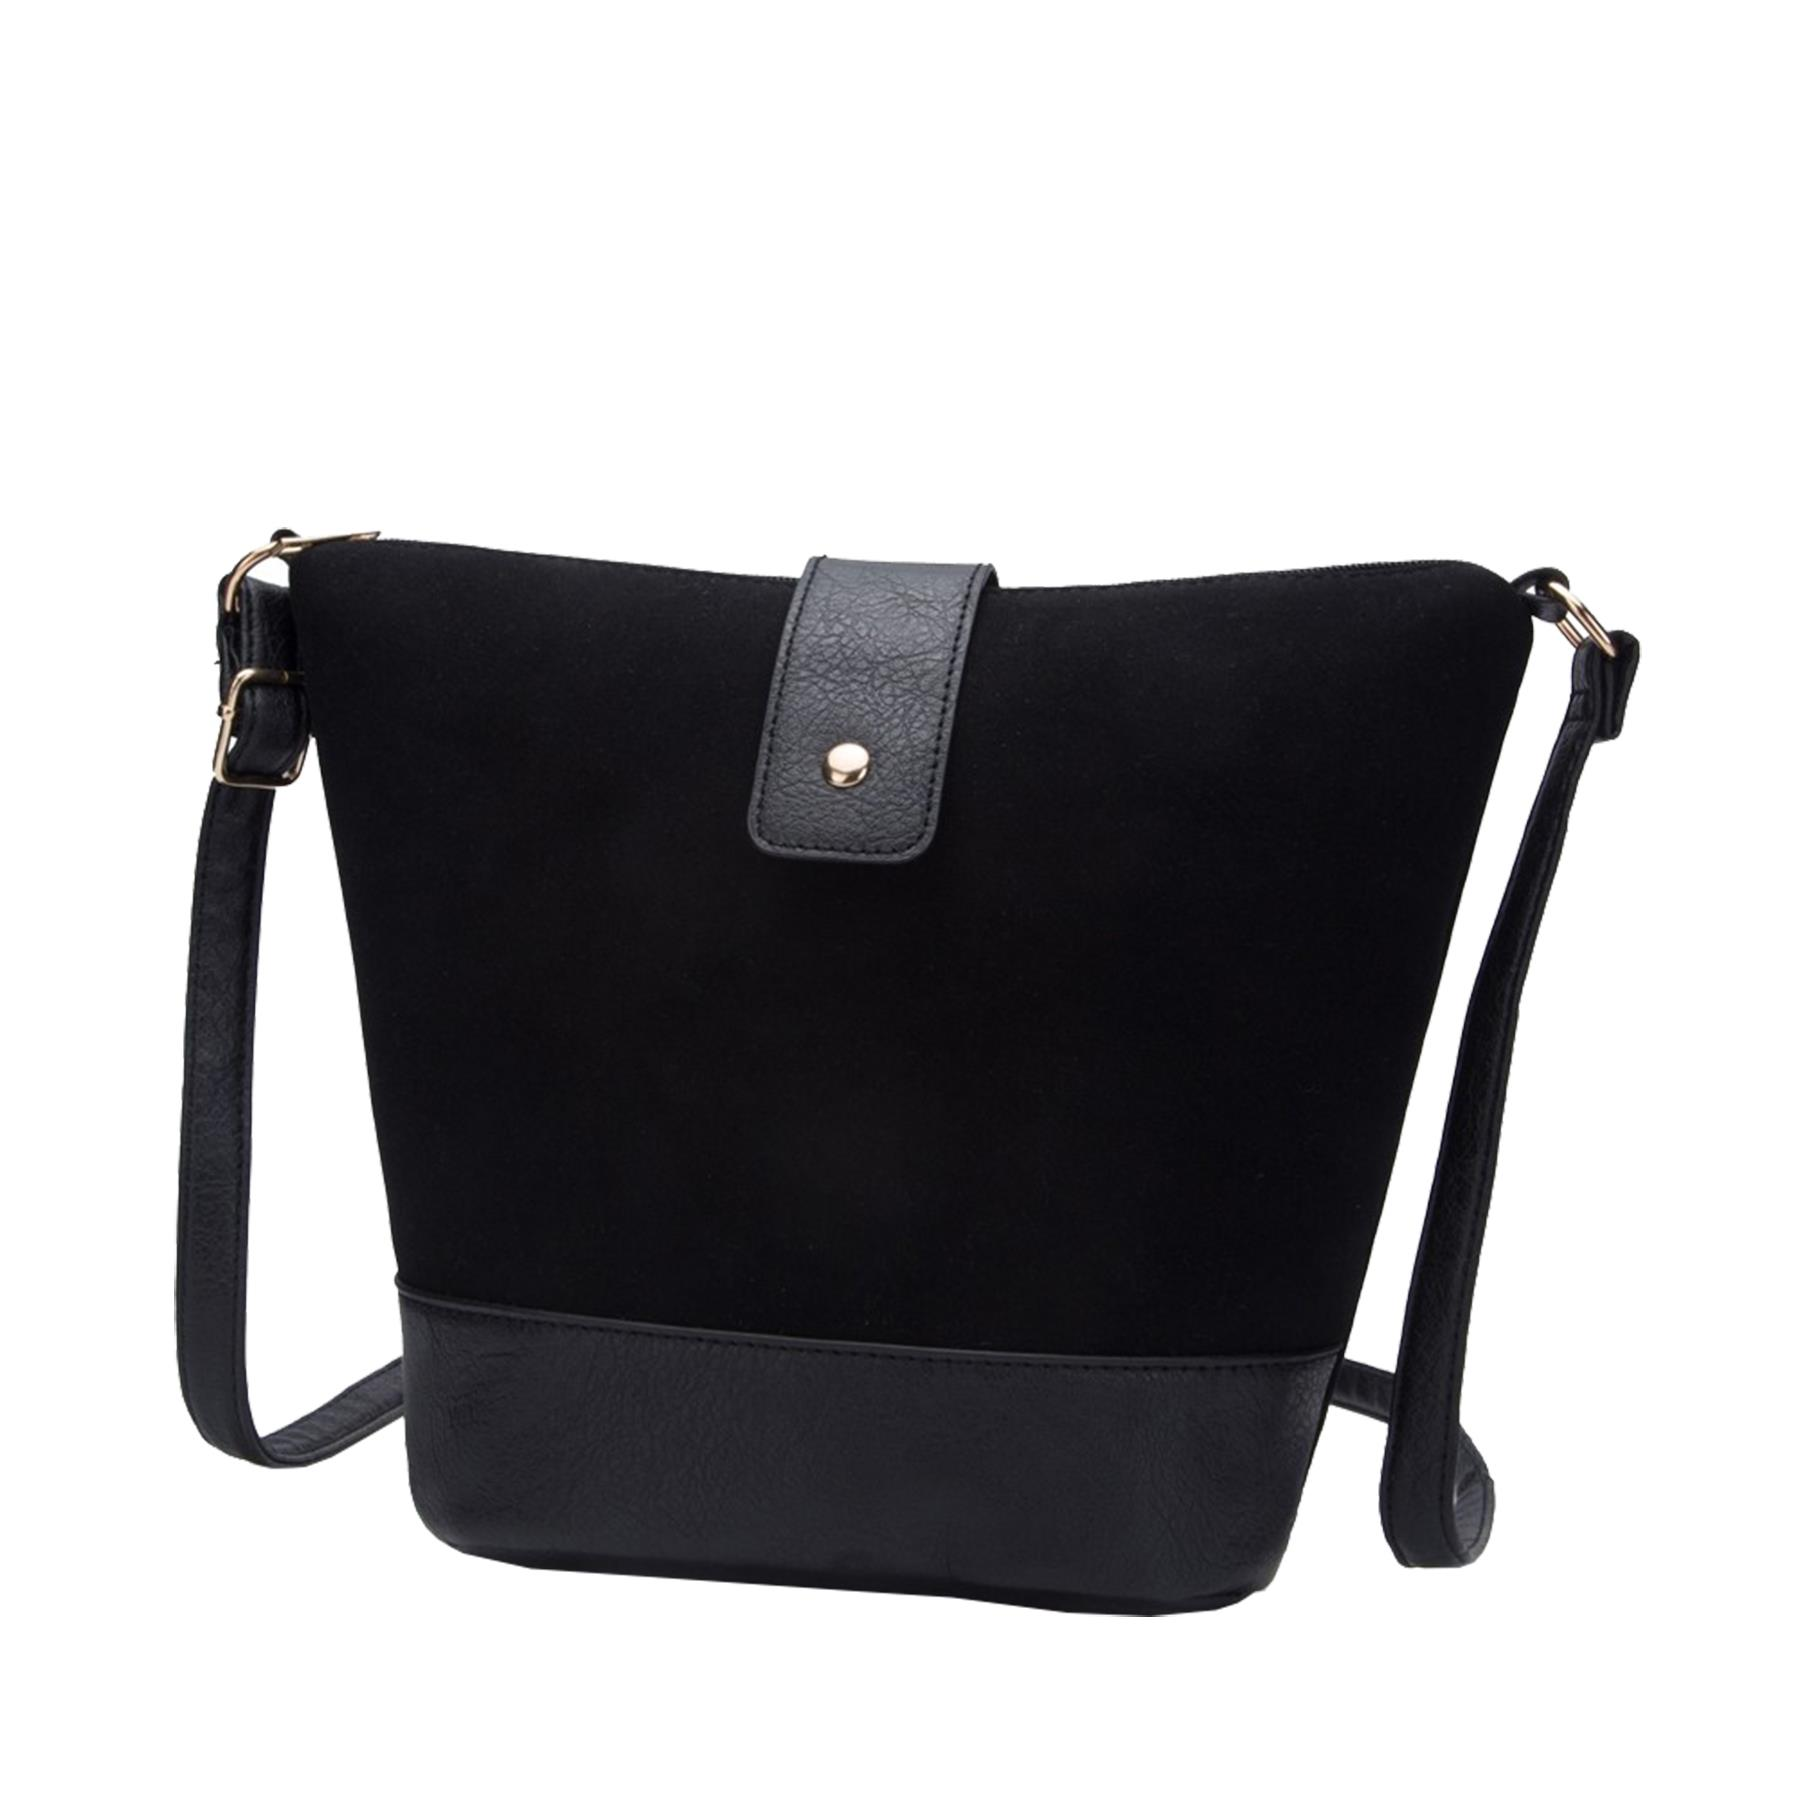 New-Ladies-Two-Toned-Faux-Leather-Fashion-Shoulder-Cross-Body-Bag thumbnail 3